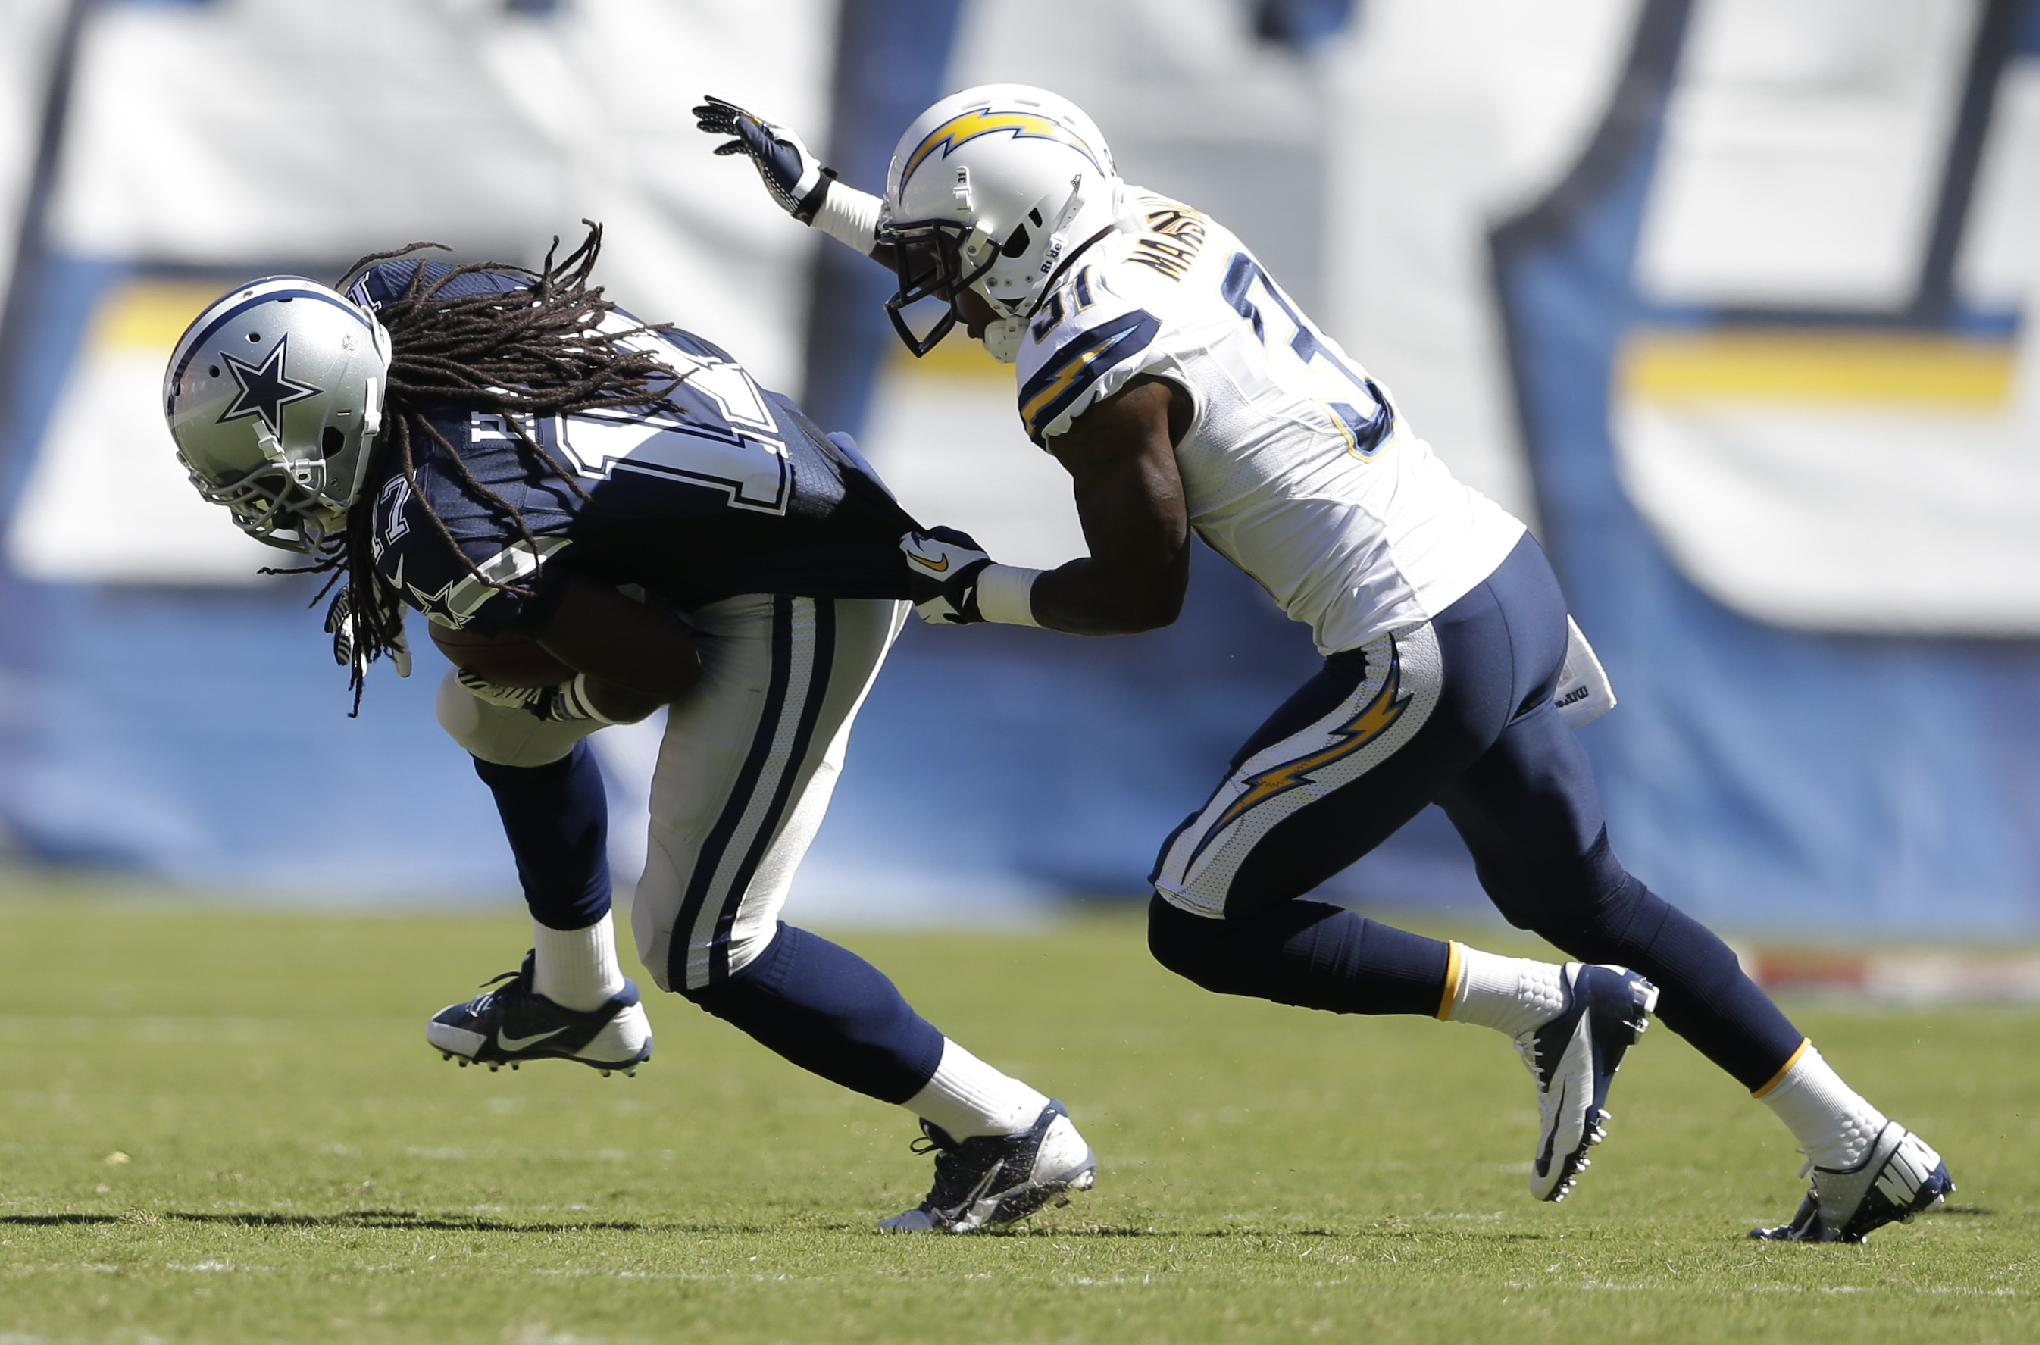 San Diego Chargers linebacker Larry English grabs Dallas Cowboys wide receiver Dwayne Harris during the first half of an NFL football game Sunday, Sept. 29, 2013, in San Diego